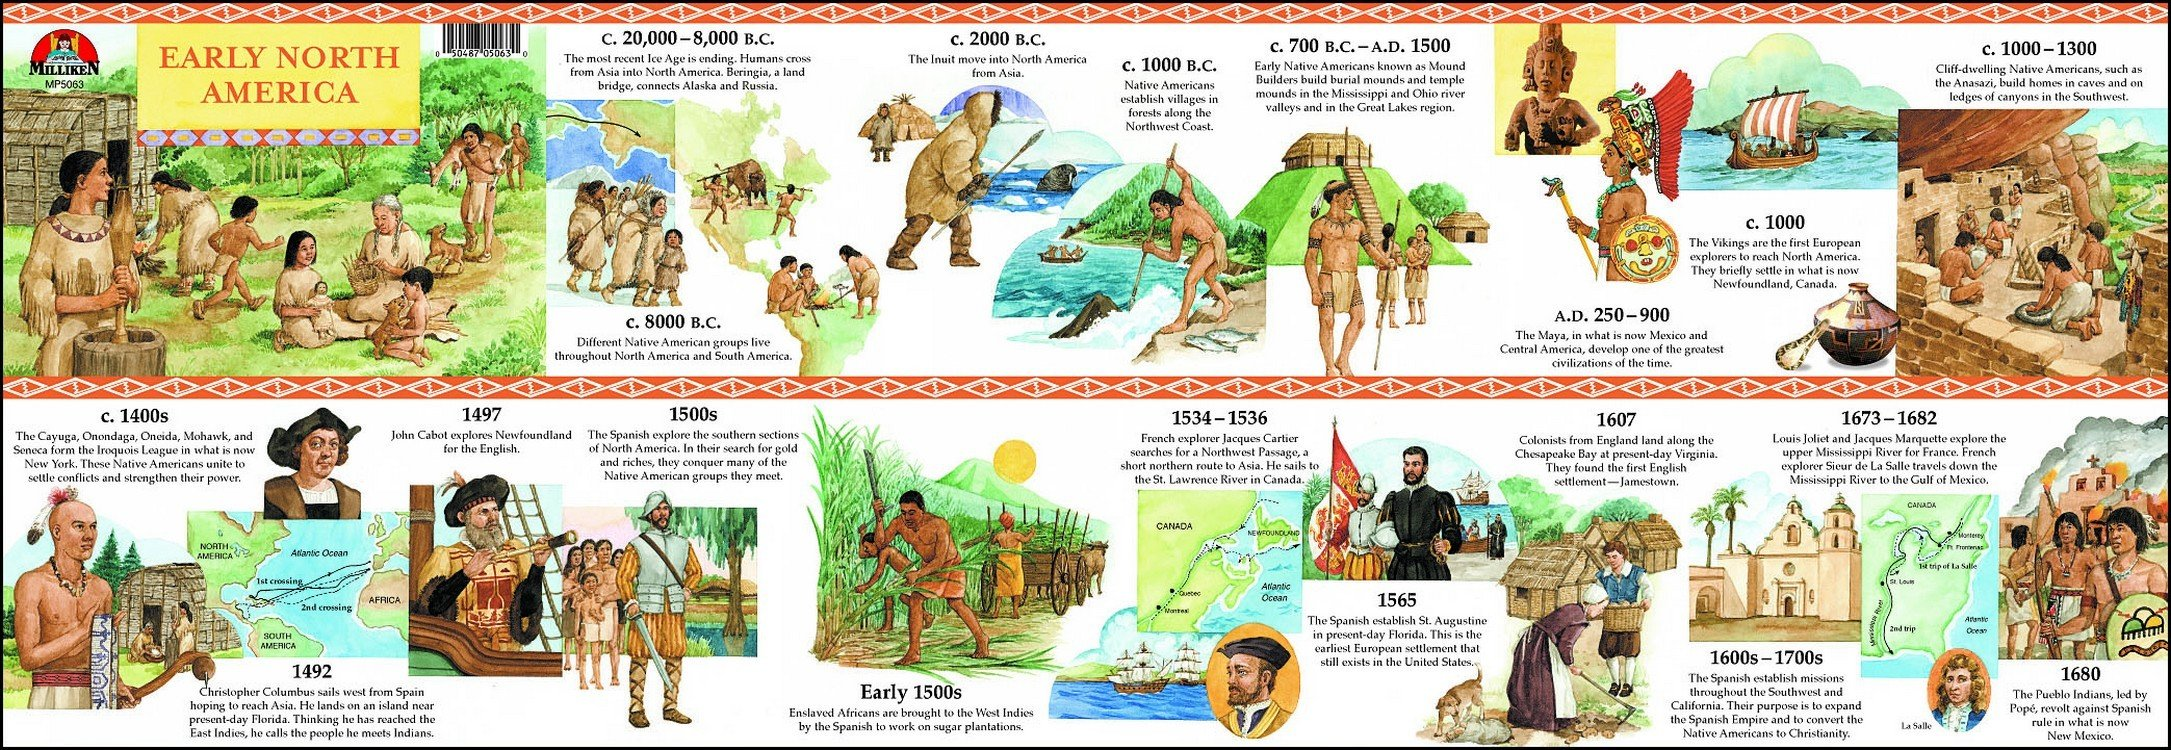 U.S. History/Early North America Timeline: Milliken Publishing